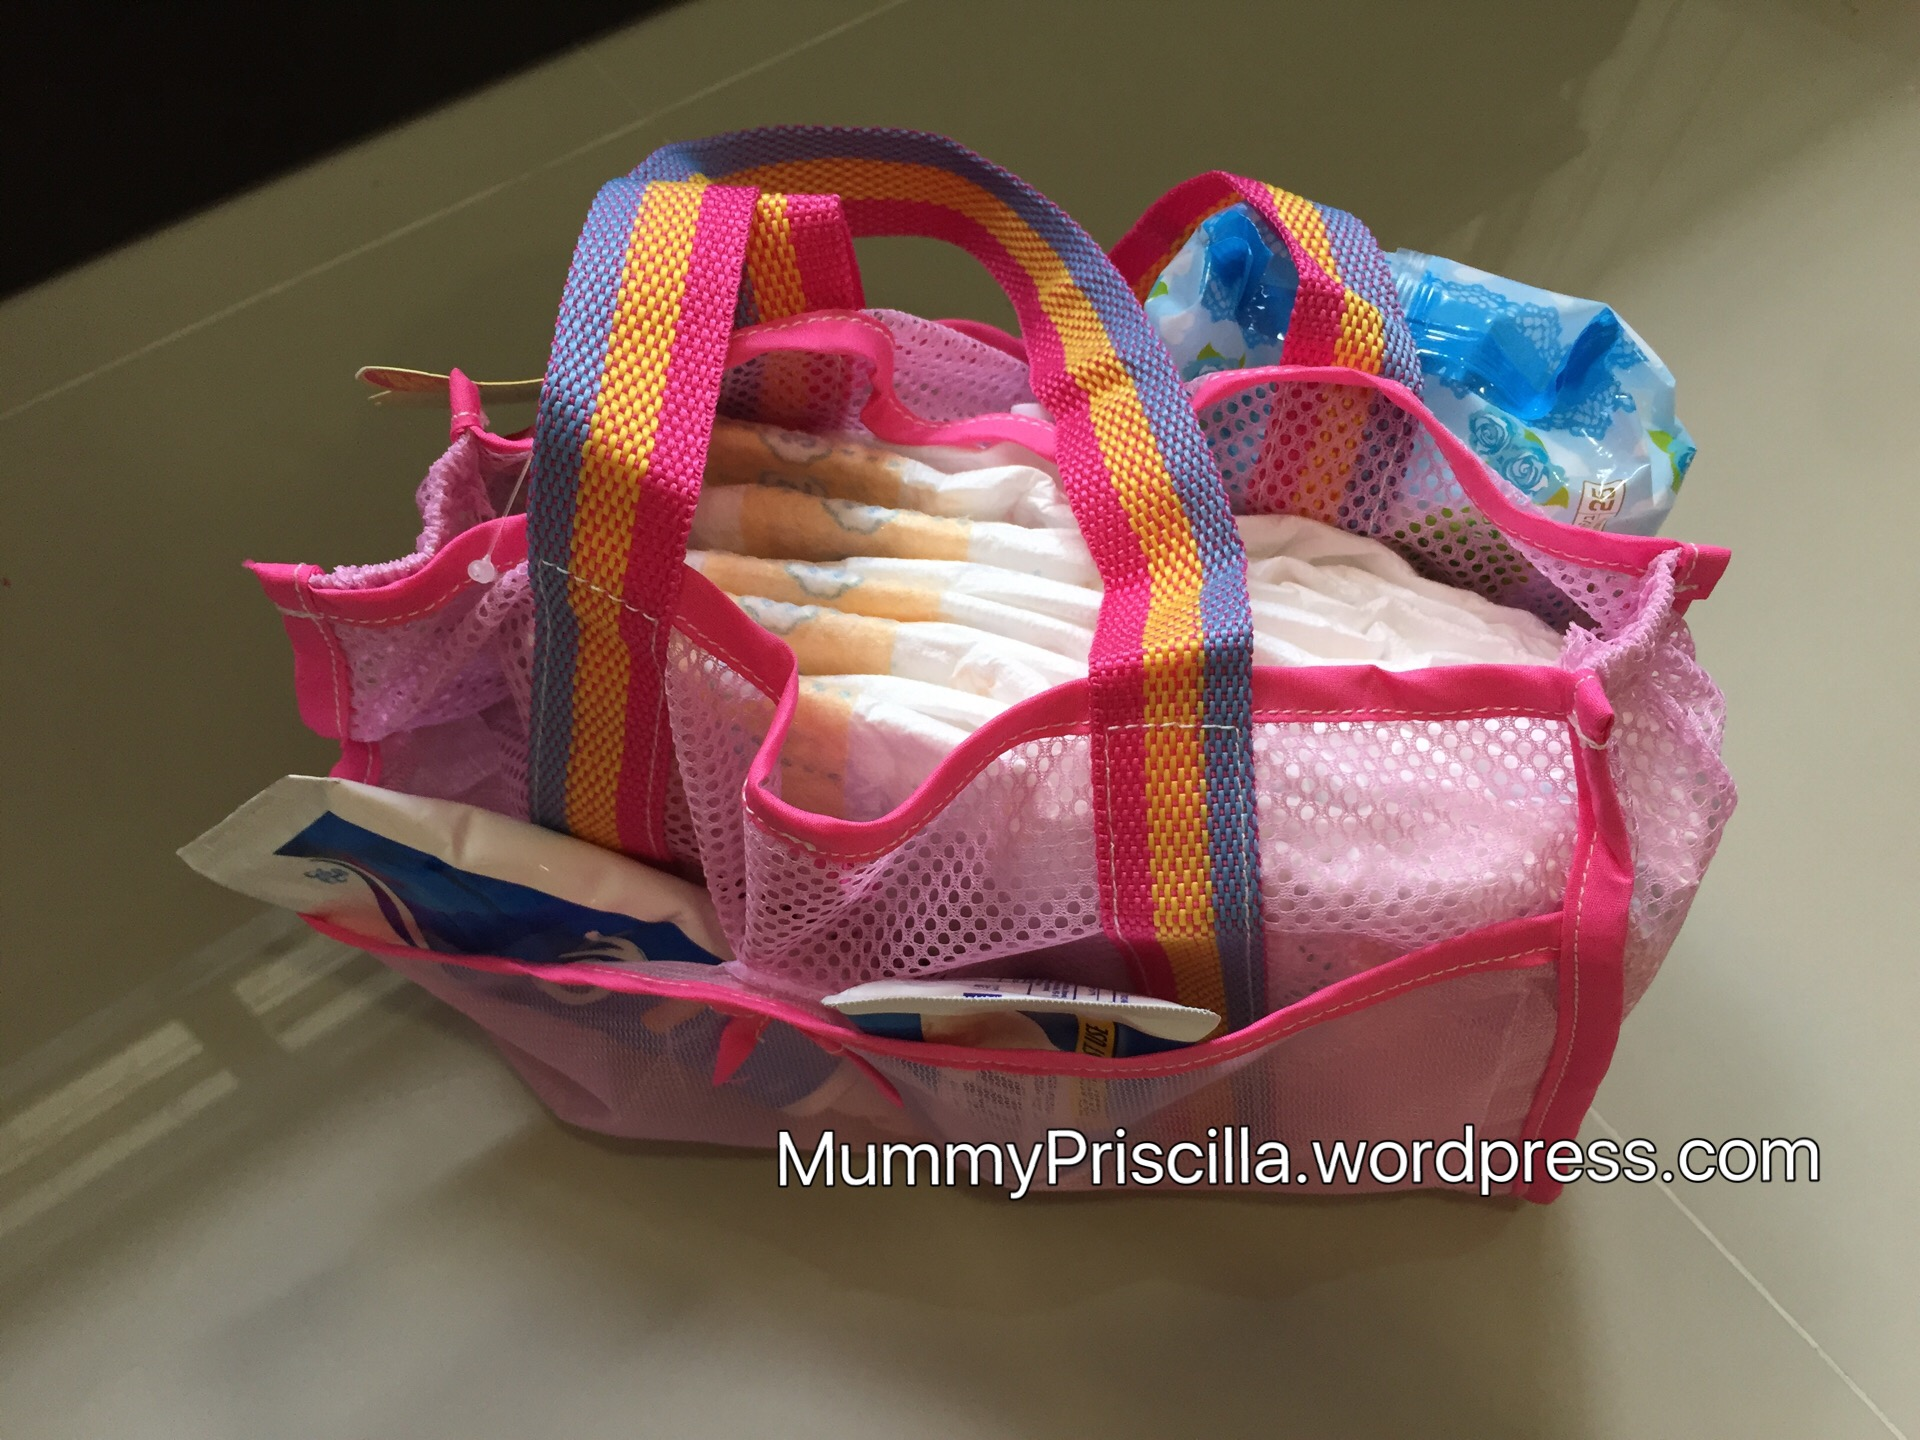 For The Love Of Daiso Part Vii Baby Baby Mummy Priscilla